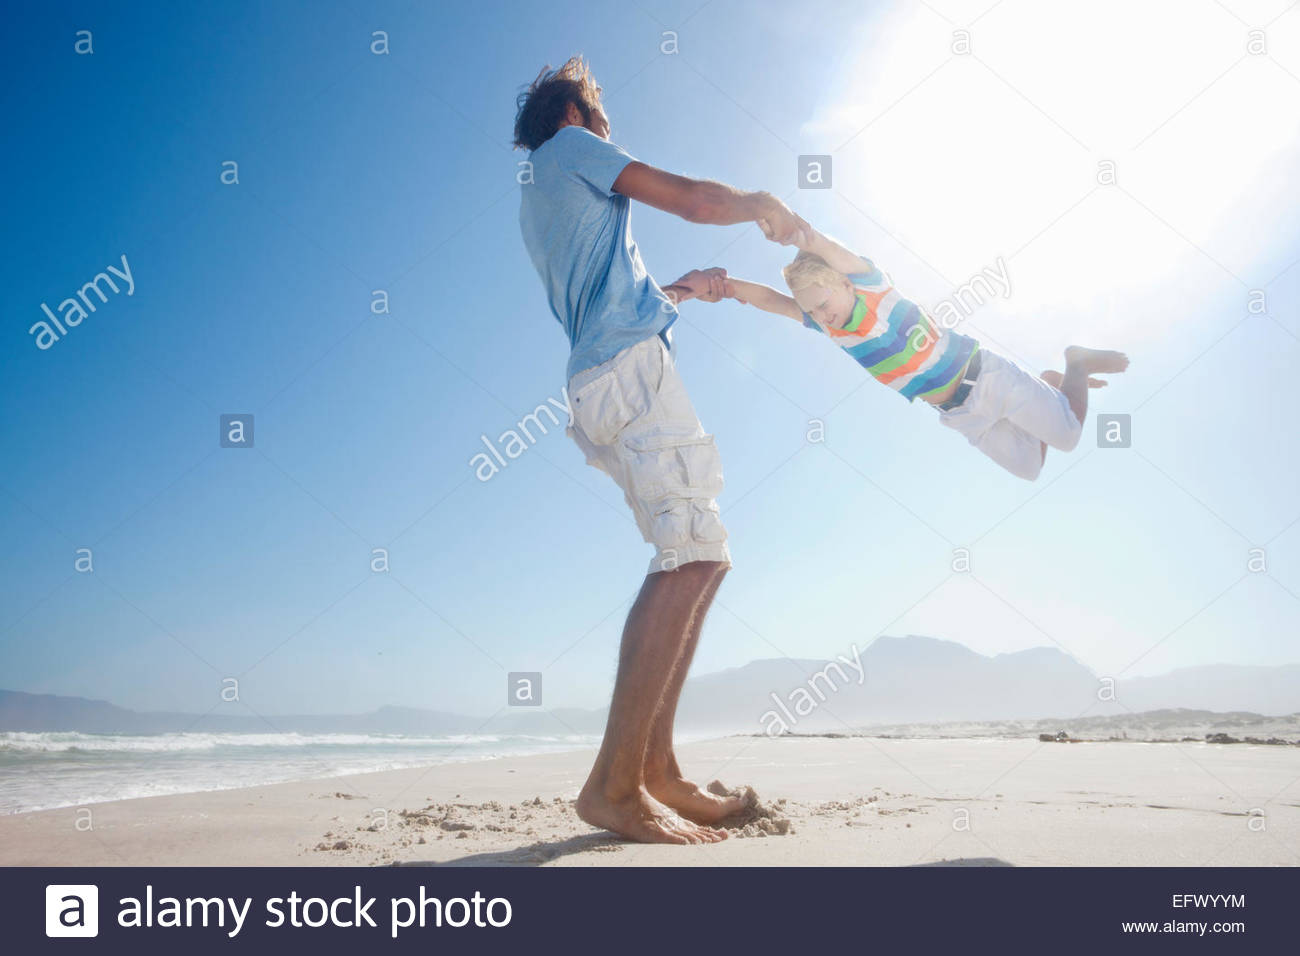 Father swinging son in the air playfully on sunny beach - Stock Image